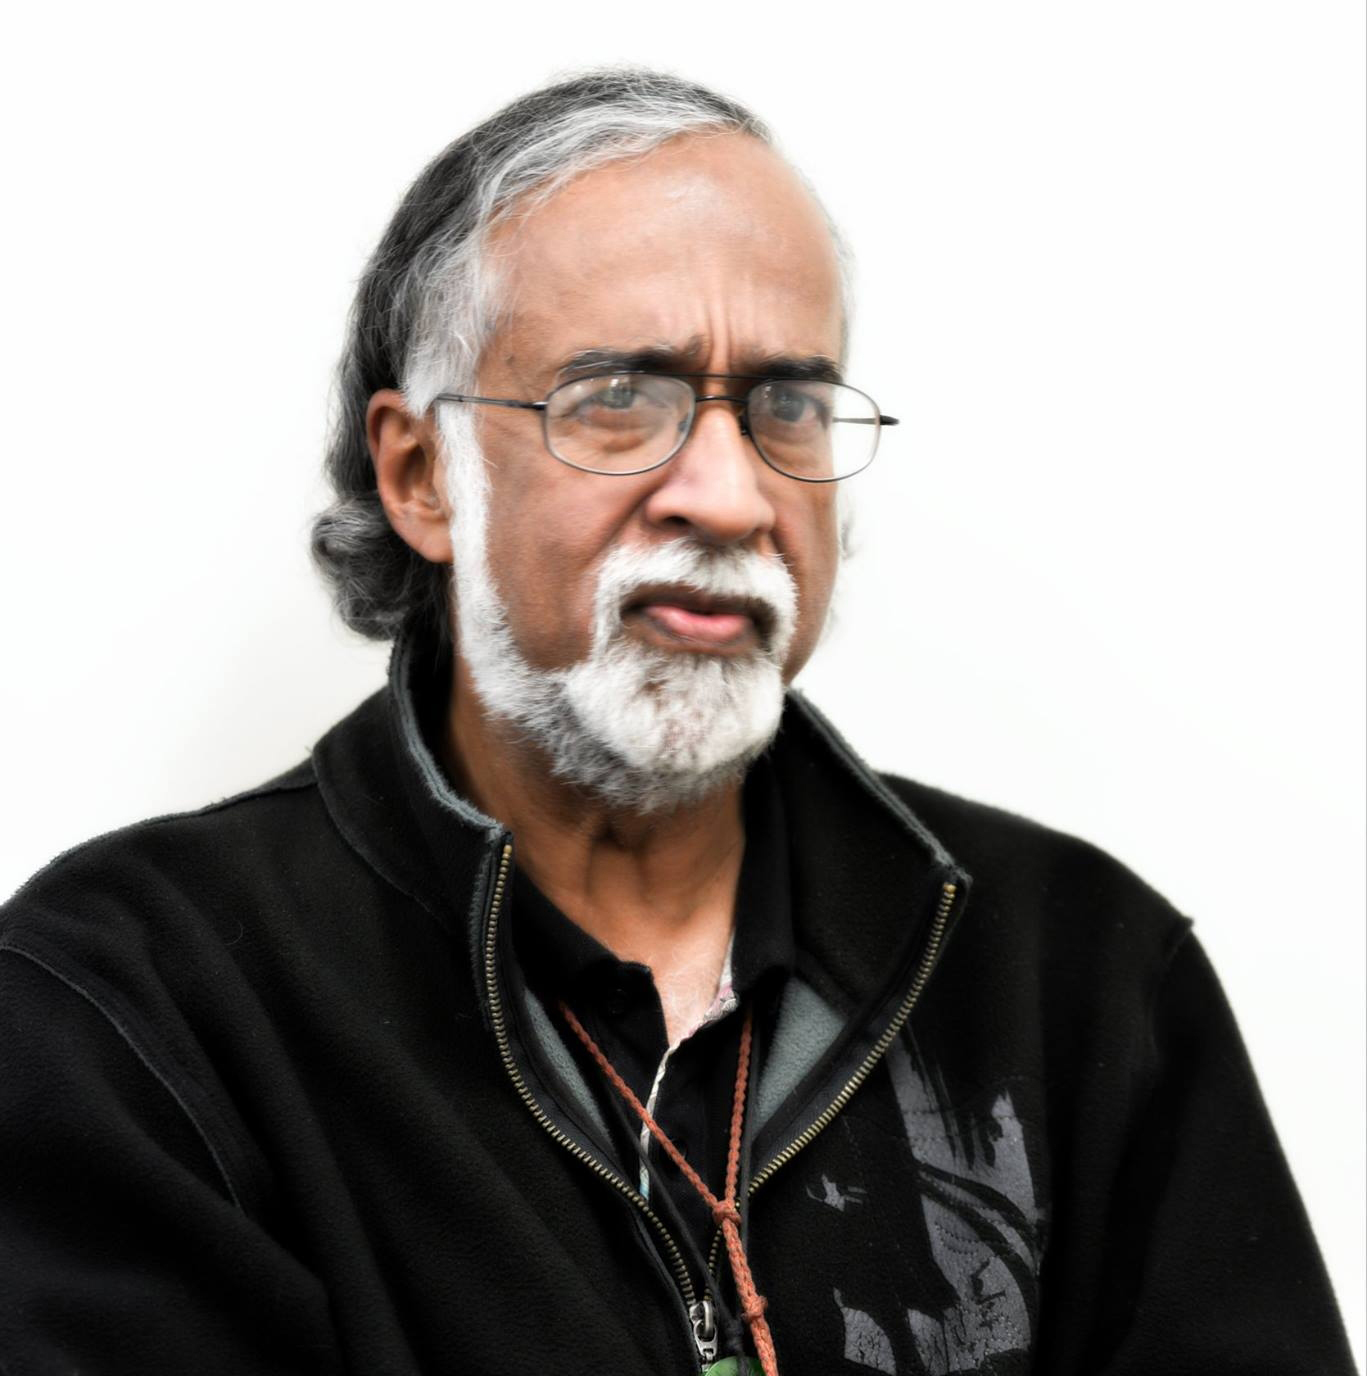 A person with dark skin and grey hair and facial hair looks sternly at the camera while wearing glasses.